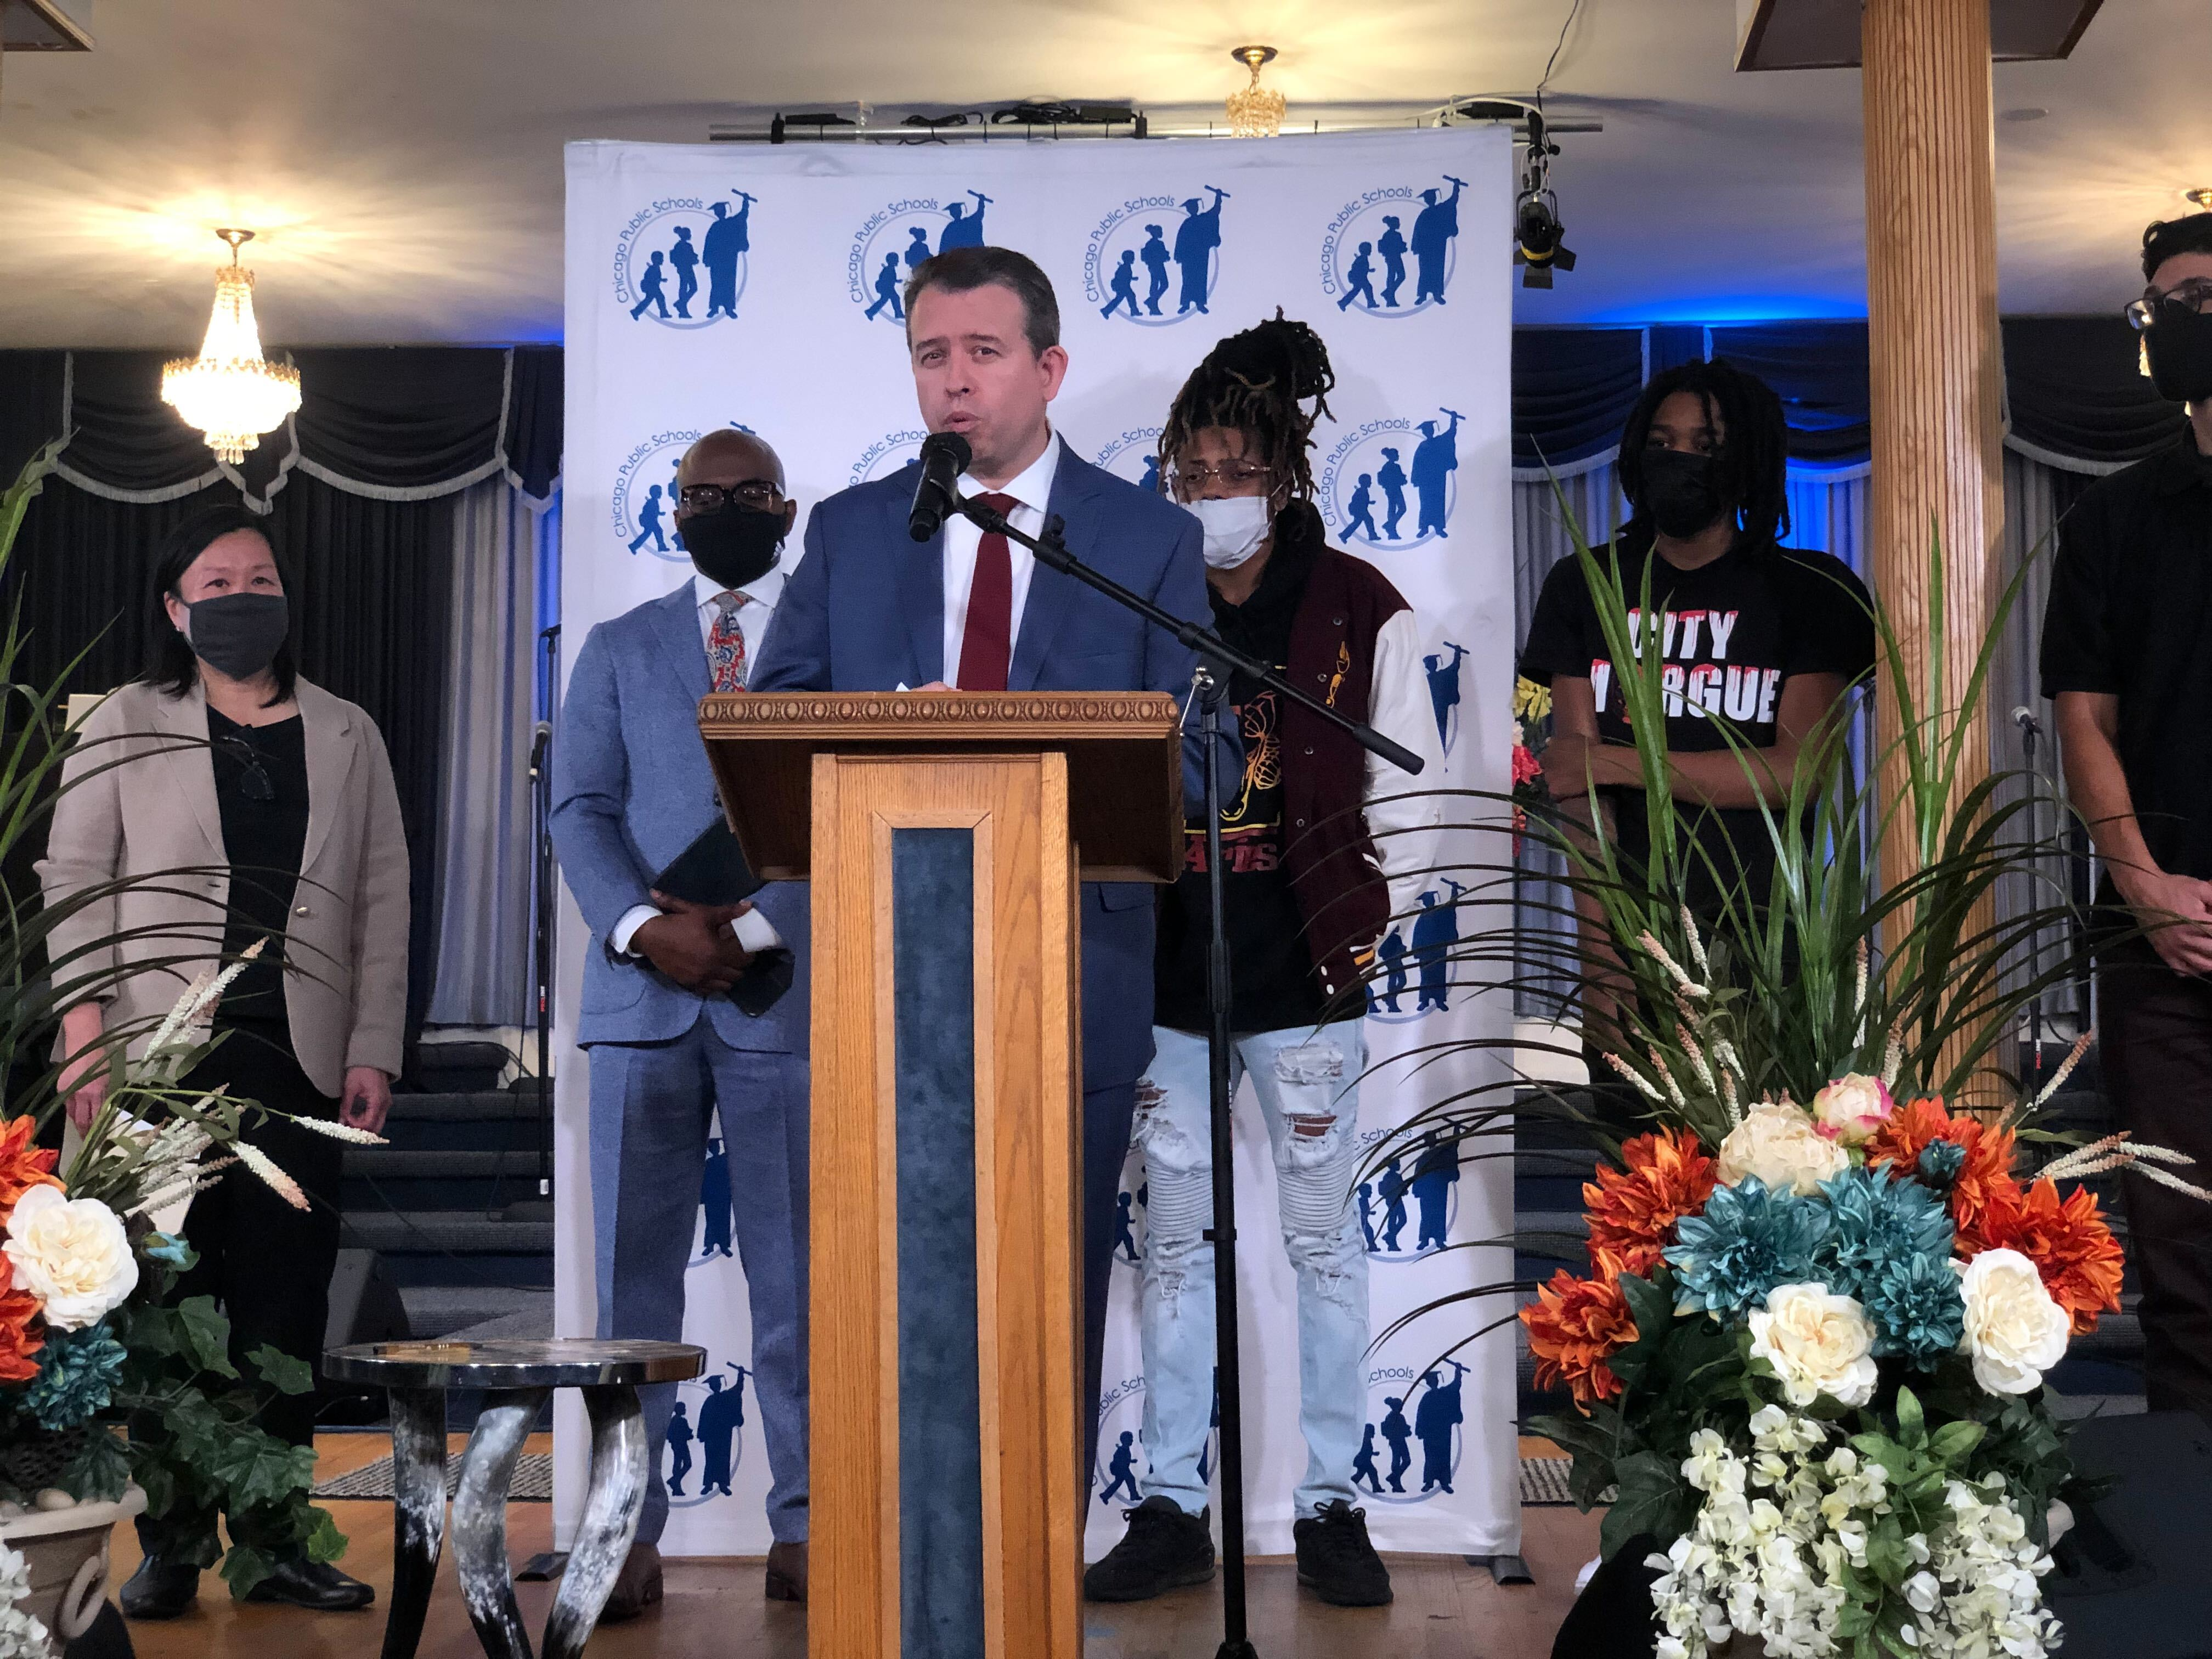 Flanked by district officials and local students, Chicago Public Schools CEO Pedro Martinez stands at a podium in a suit and tie and announces an expansion of a youth violence intervention program Choose for Change.